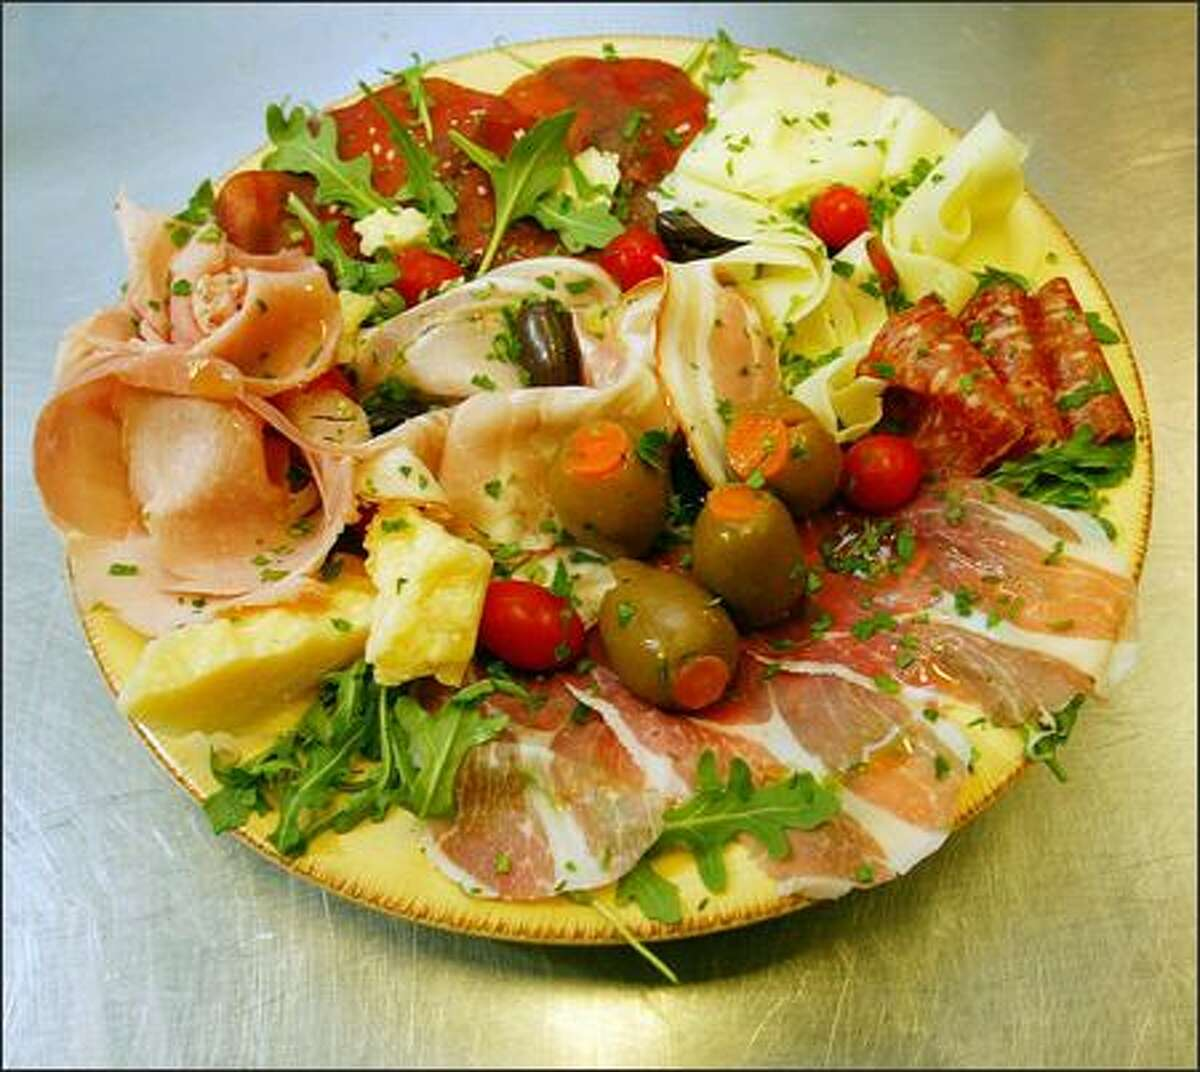 One of the best bets at Mondello is the antipasto misto, a nice, shareable plate of salami, porchetta, artichoke hearts, fresh mozzarella, roma tomatoes and roasted red peppers.